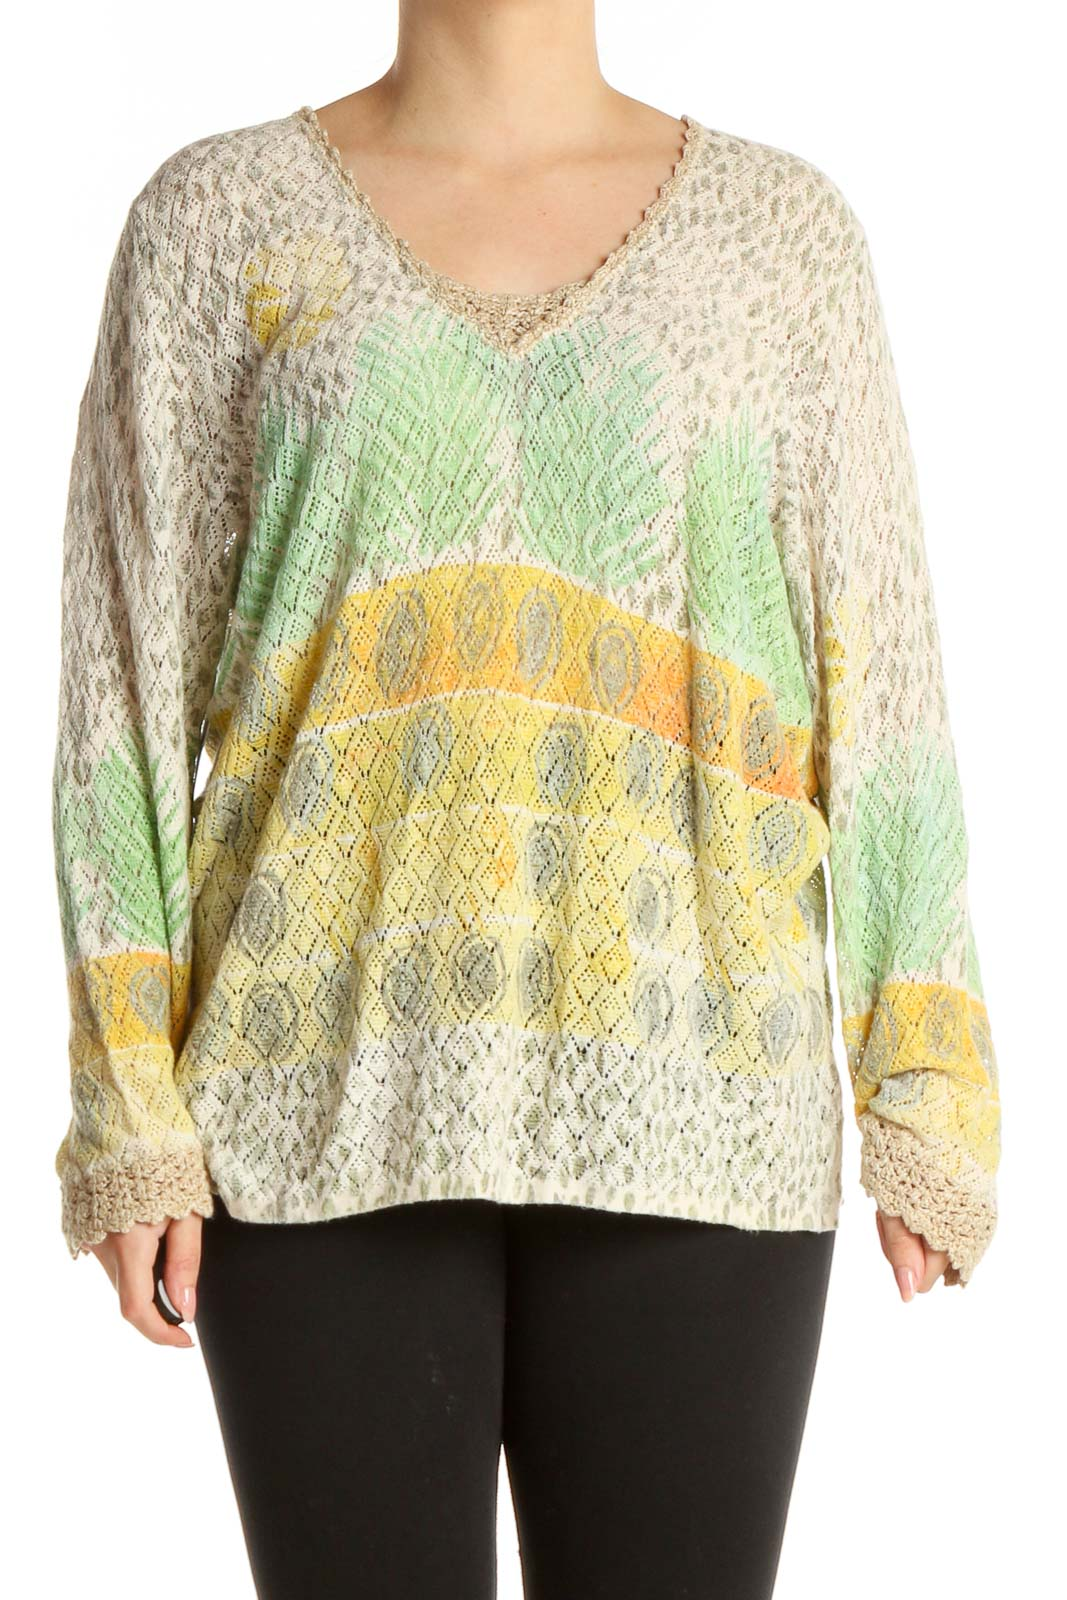 Green Textured Retro Blouse Front